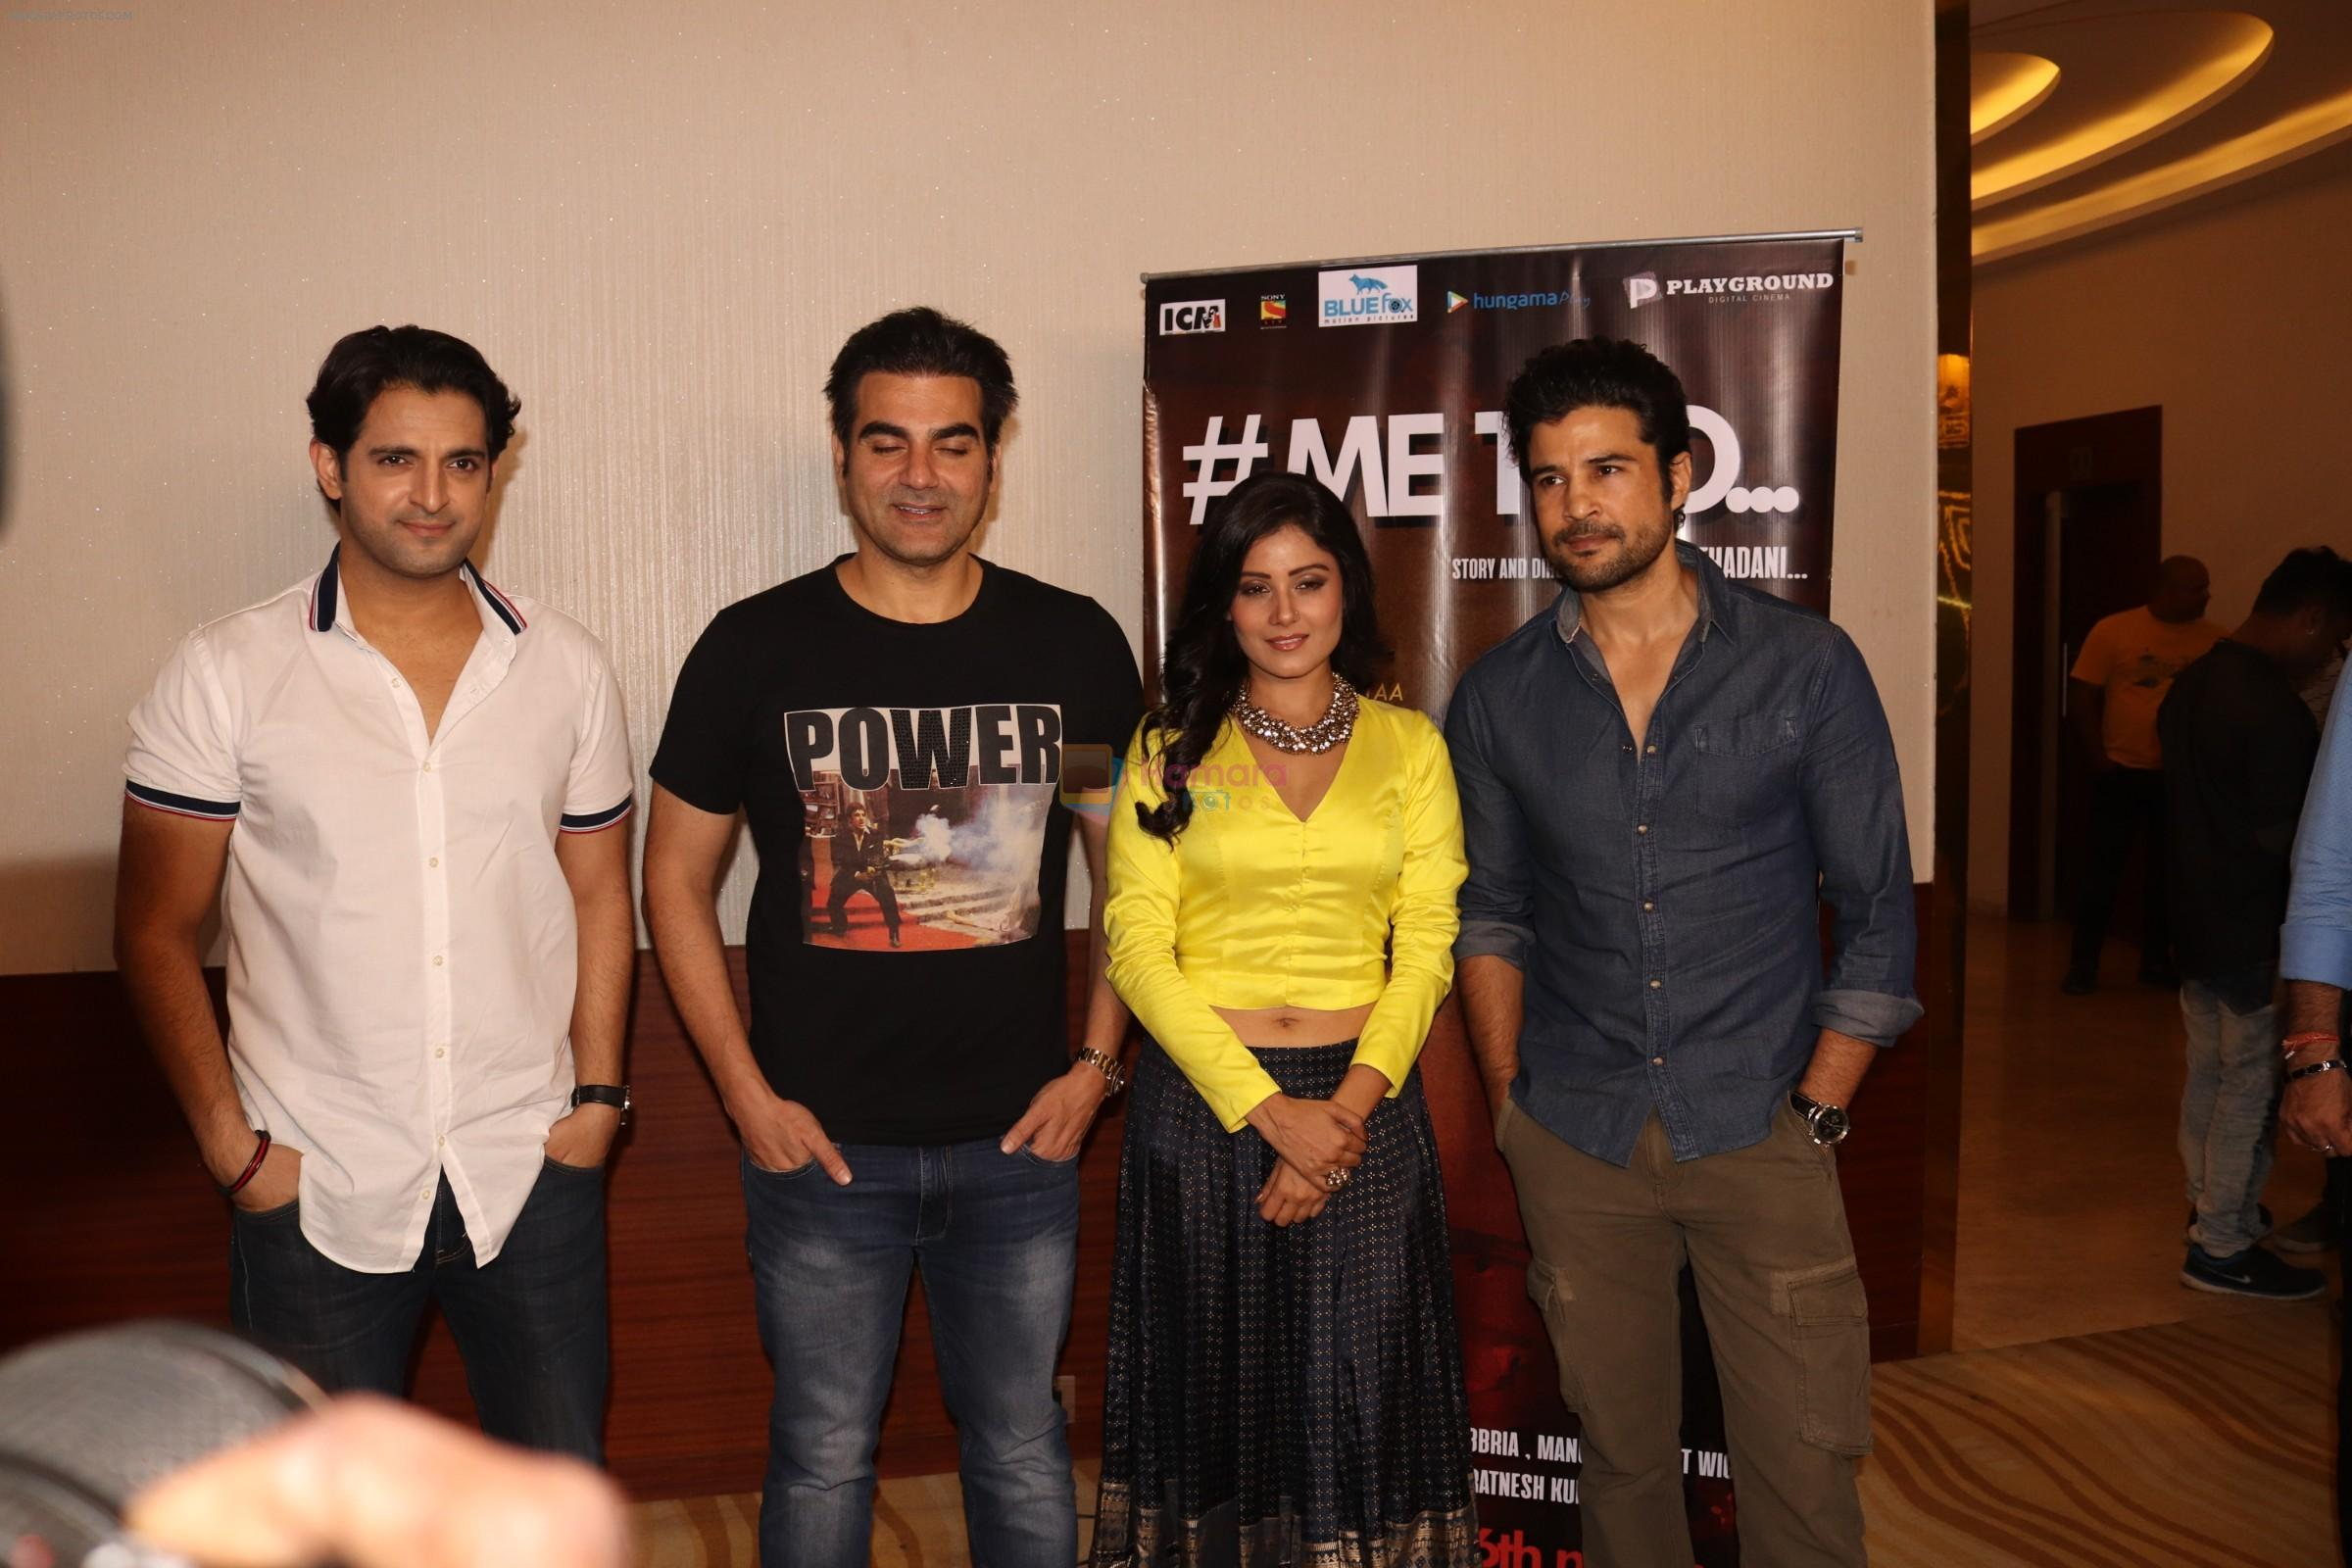 Arbaaz Khan, Rajeev Khandelwal, Archana Gupta at the Premiere of the upcoming short film #metoo at The View Andheri in mumbai on 6th March 2018